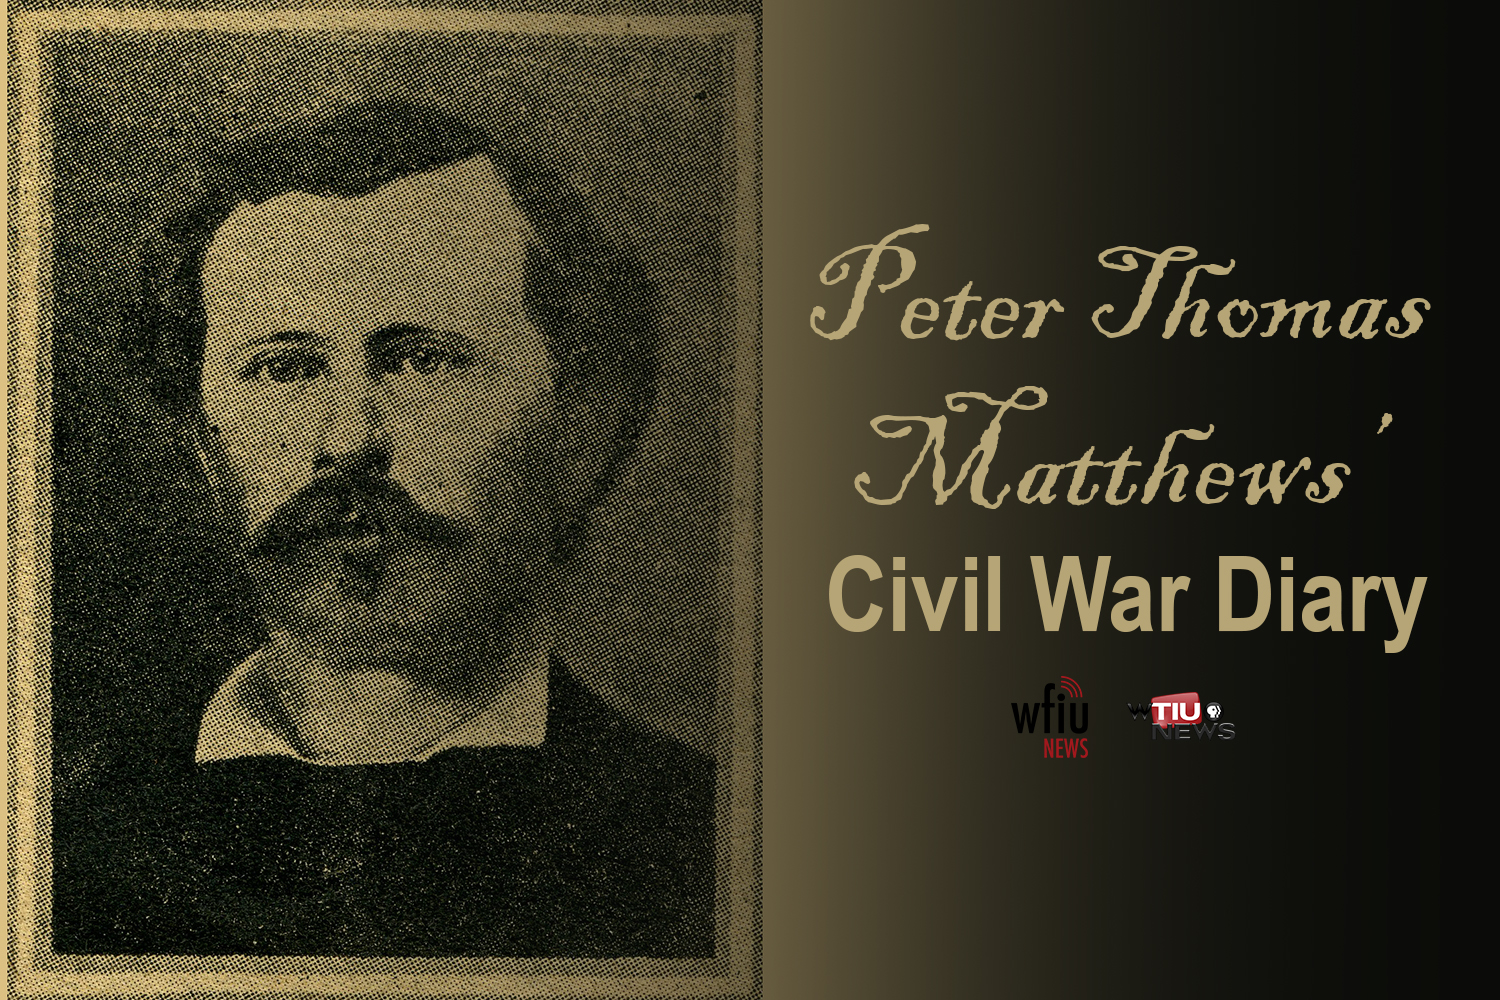 Civil war diary thumbnail 6